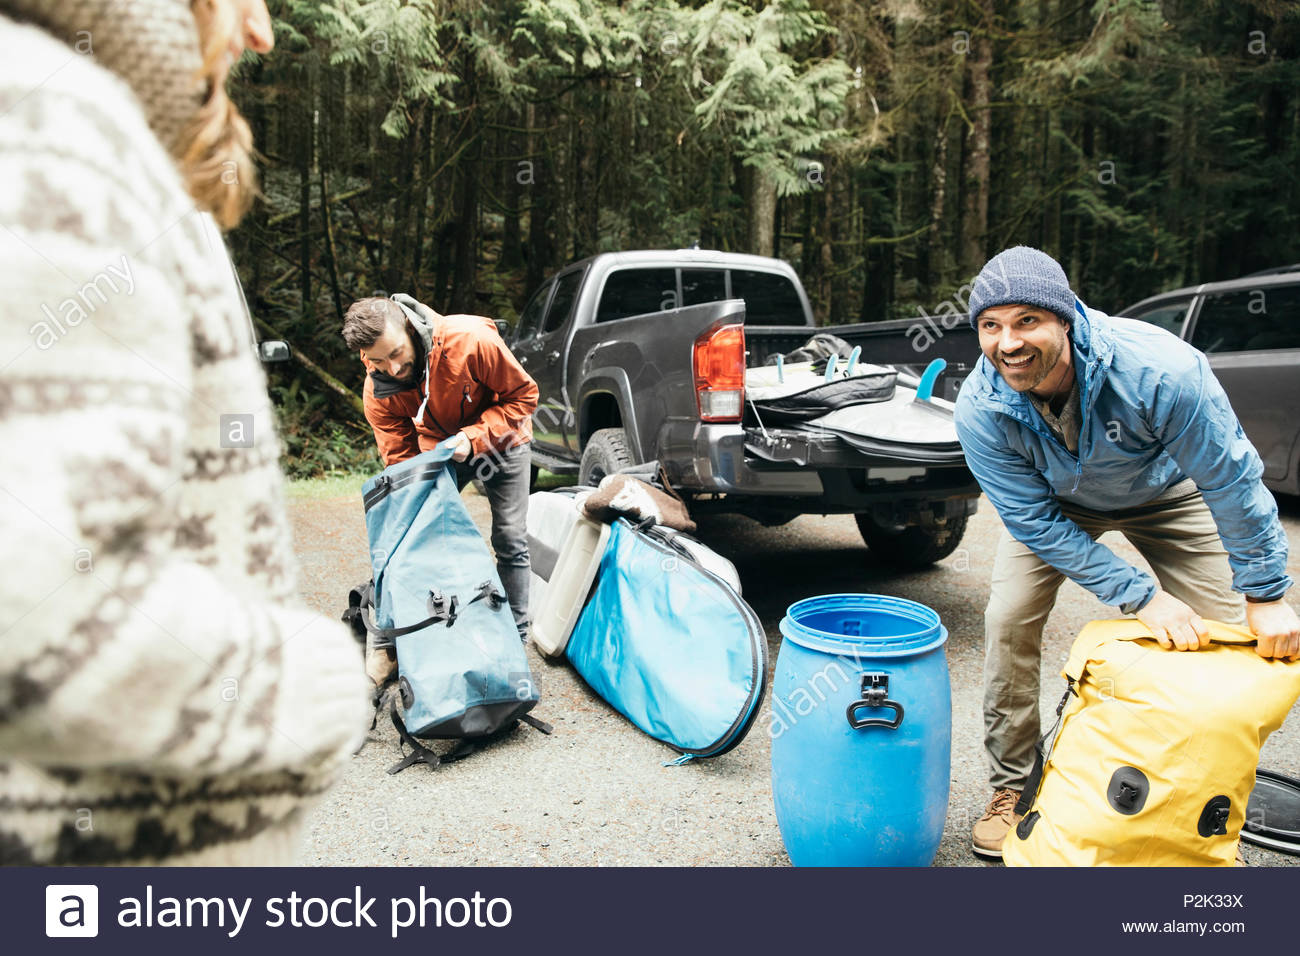 Friends on weekend surfing getaway, unloading equipment in parking lot - Stock Image